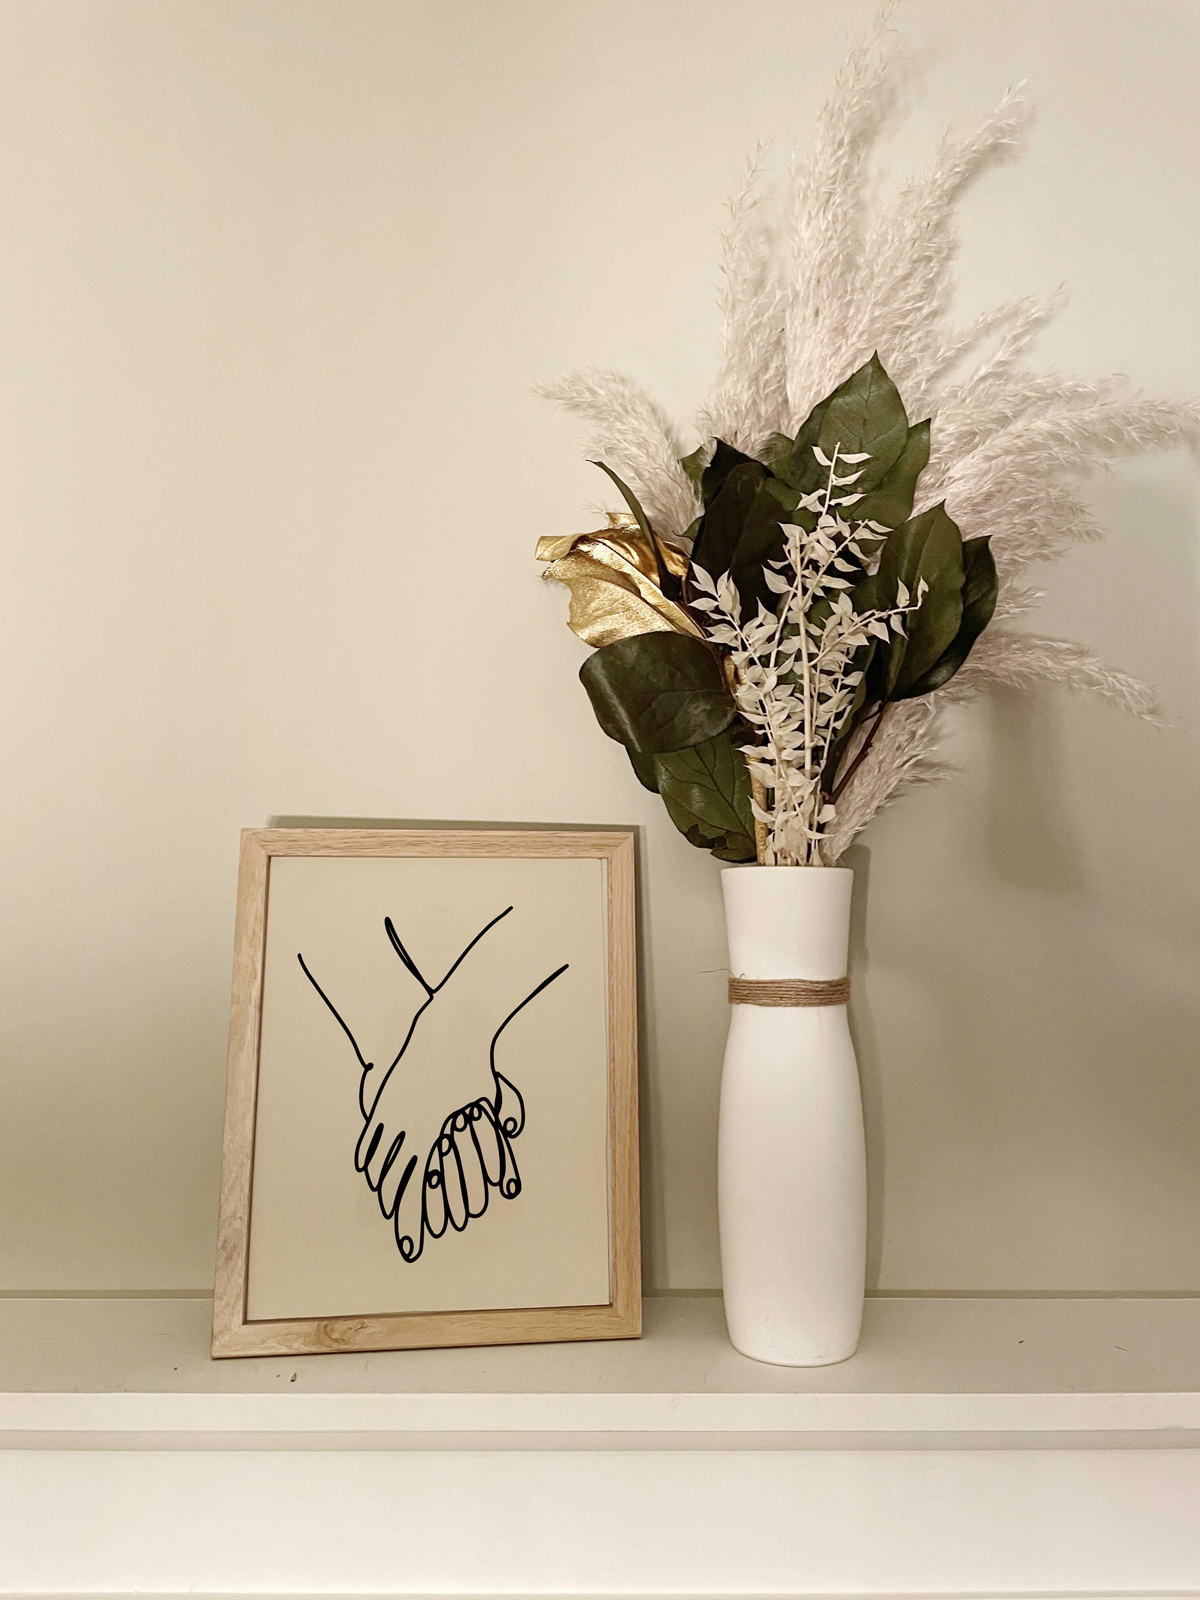 """Photo of """"Hands"""" art print in a frame next to flowers"""